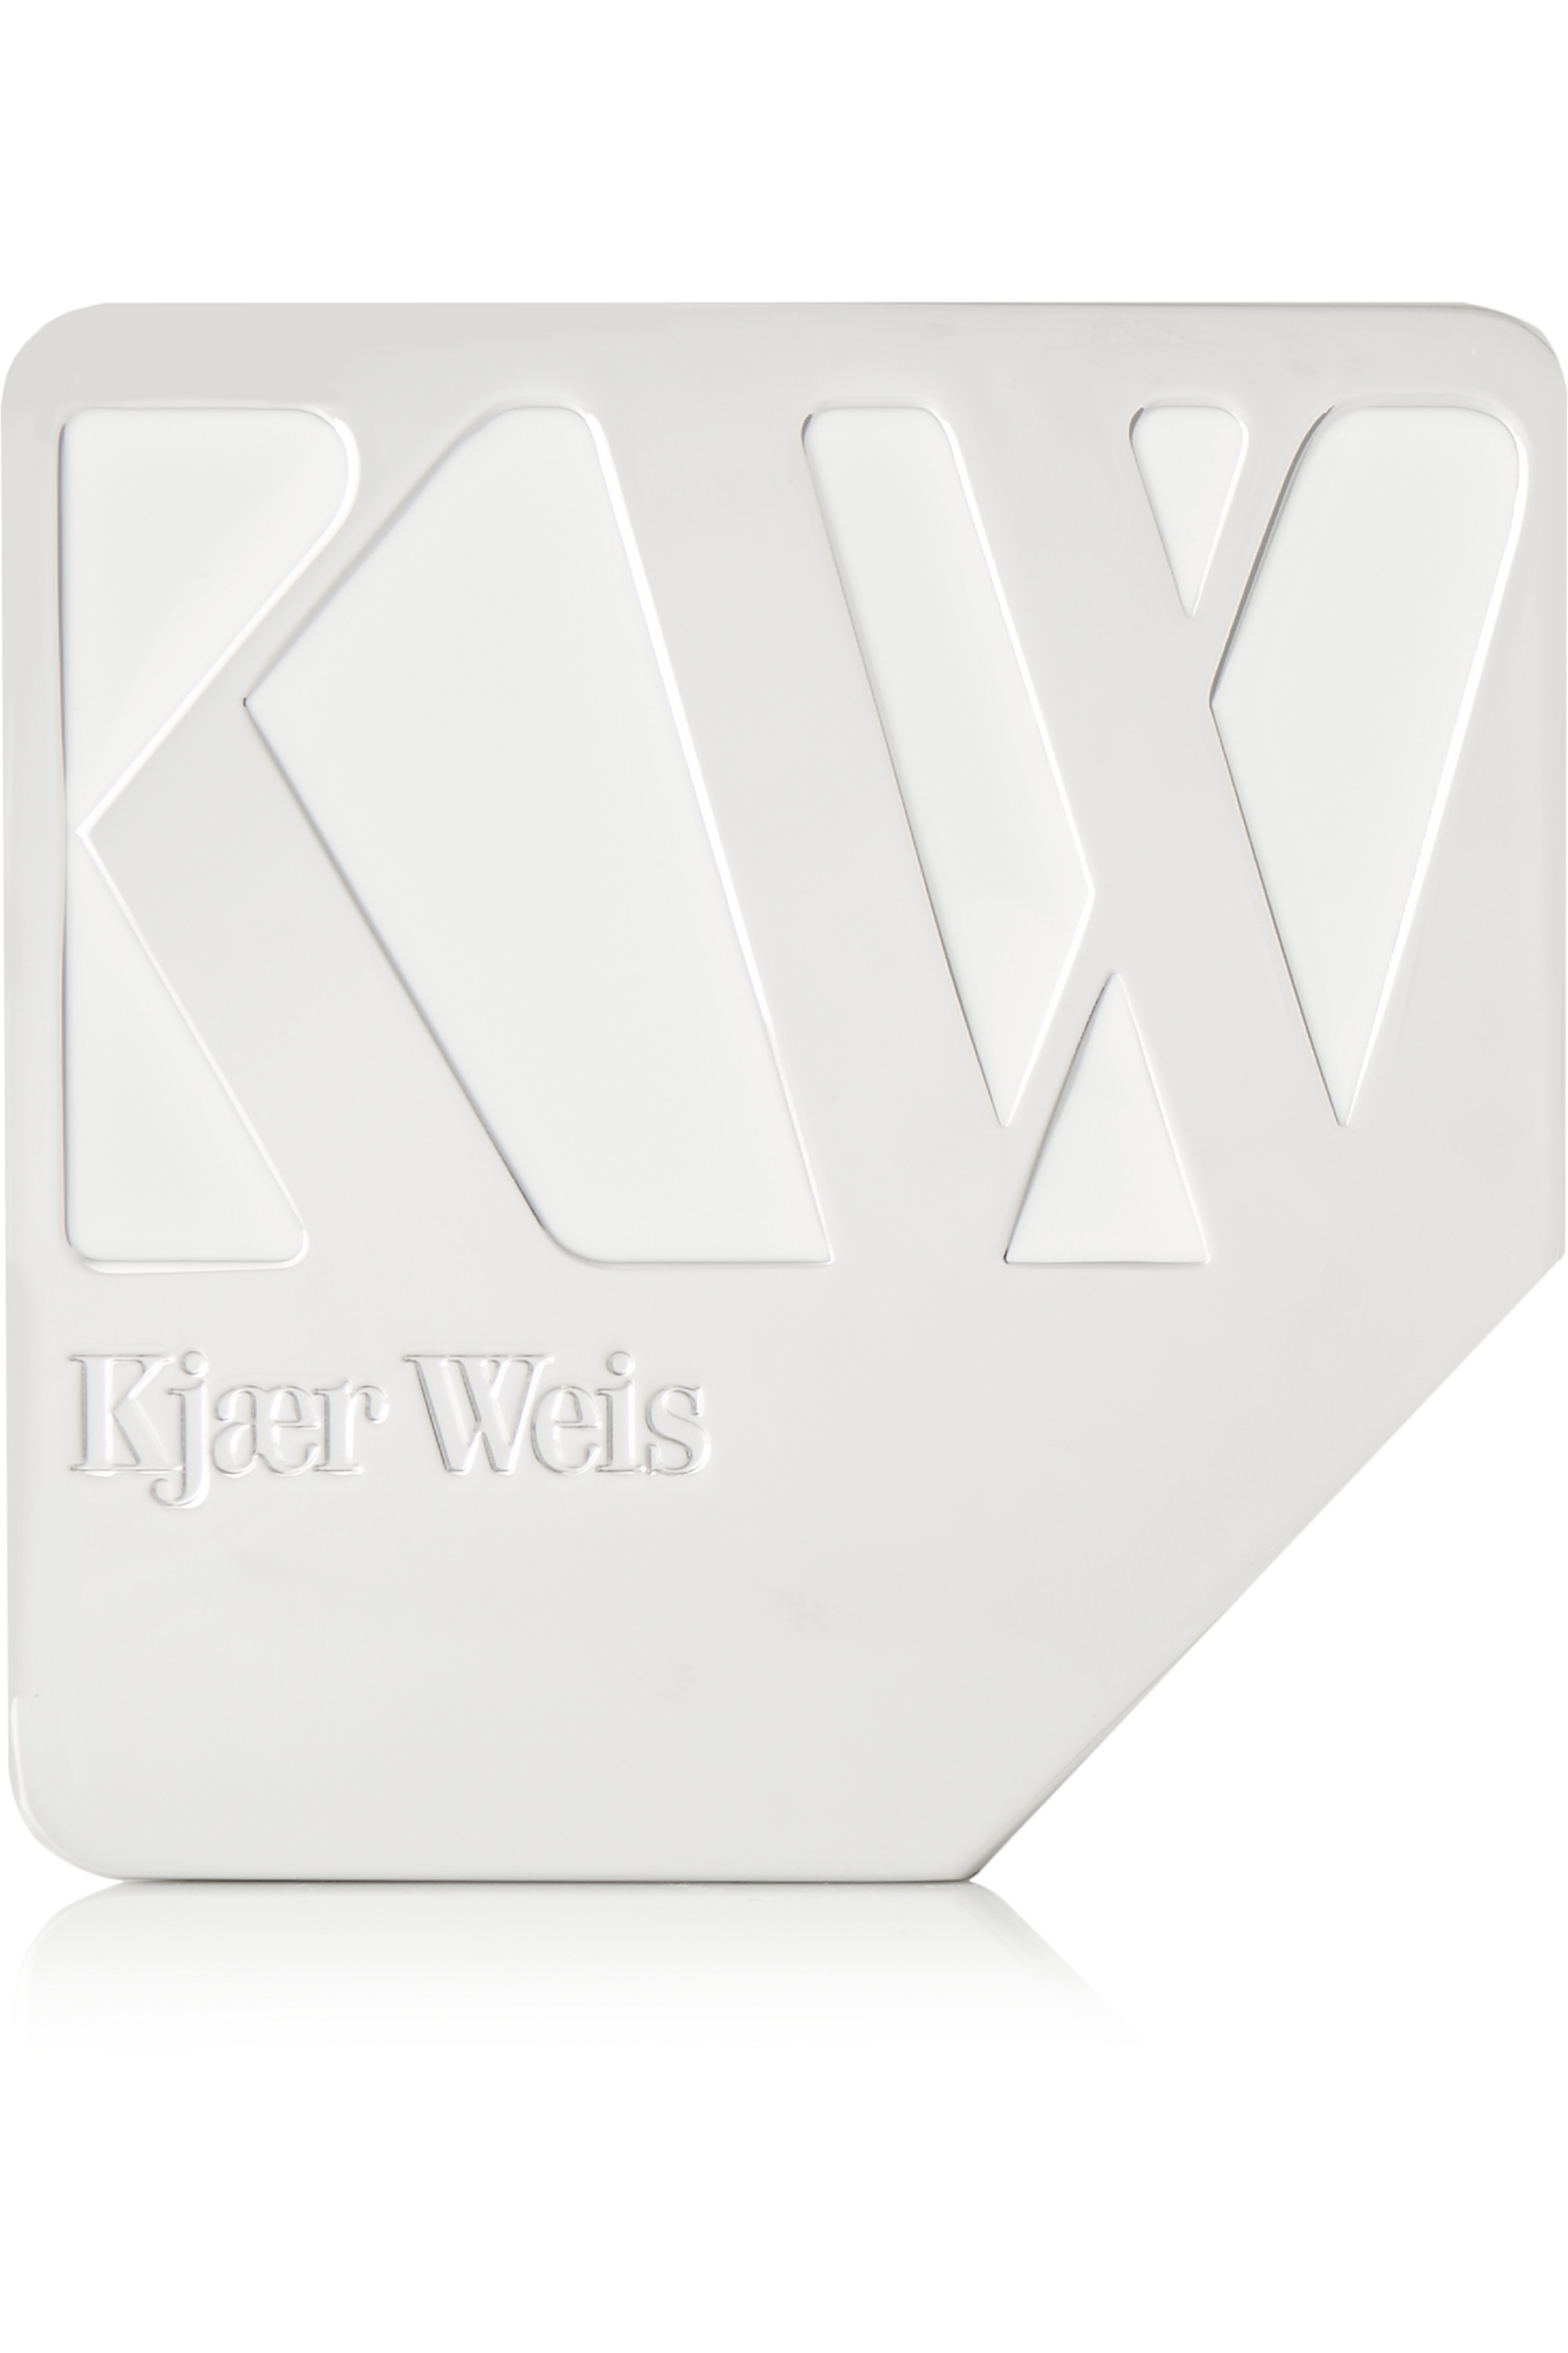 Kjaer Weis Cream Foundation - Lightness